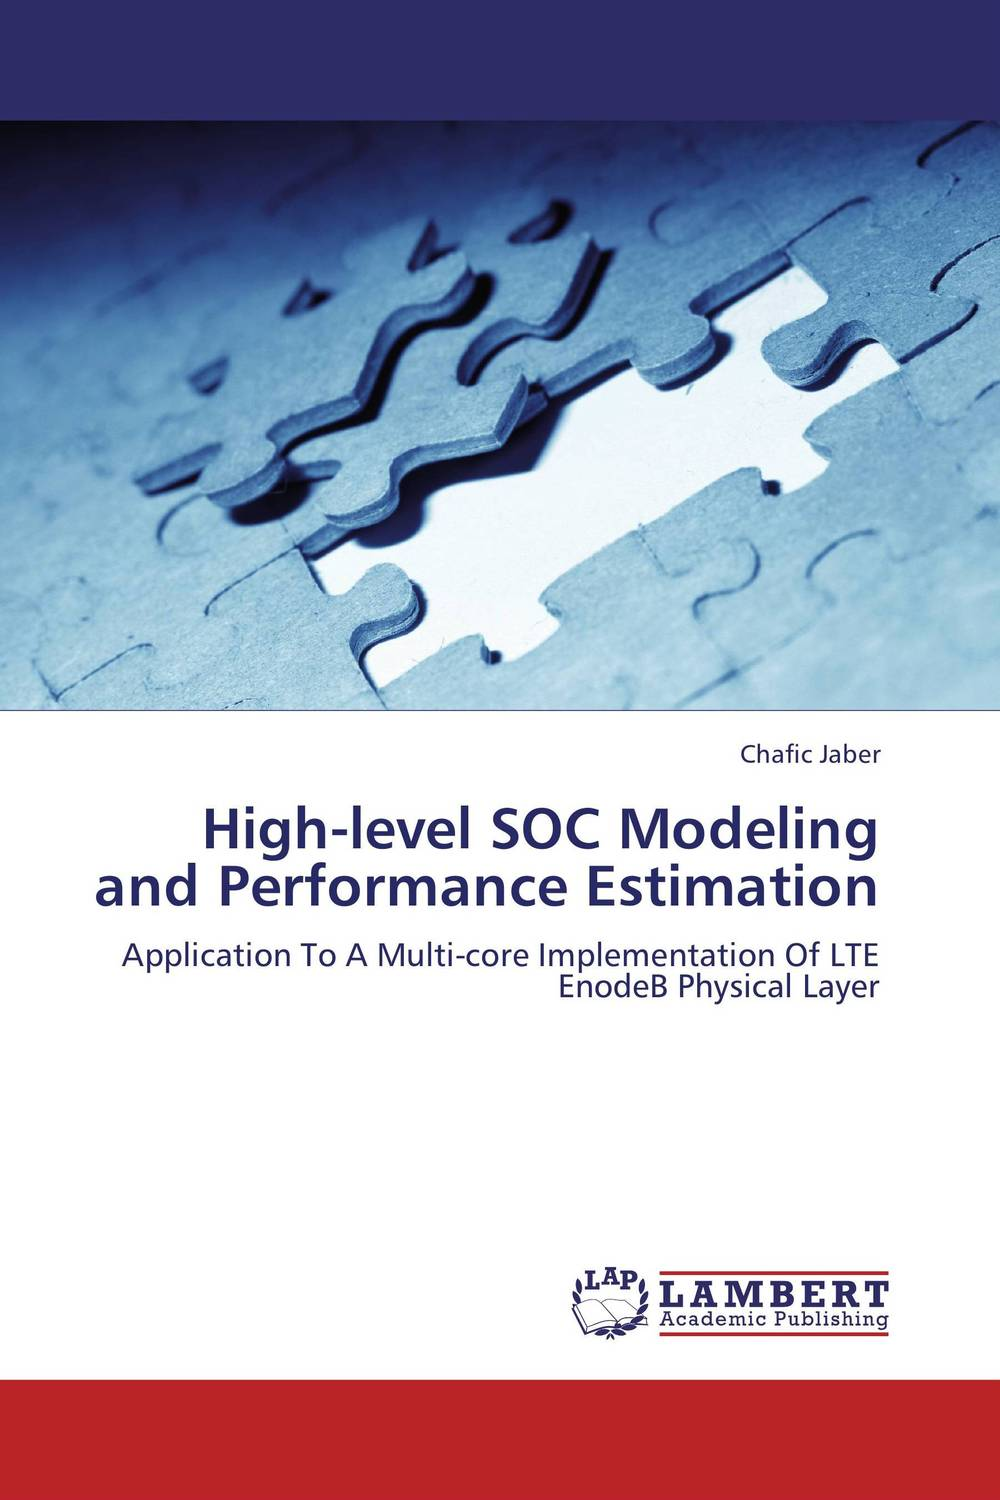 High-level SOC Modeling and Performance Estimation